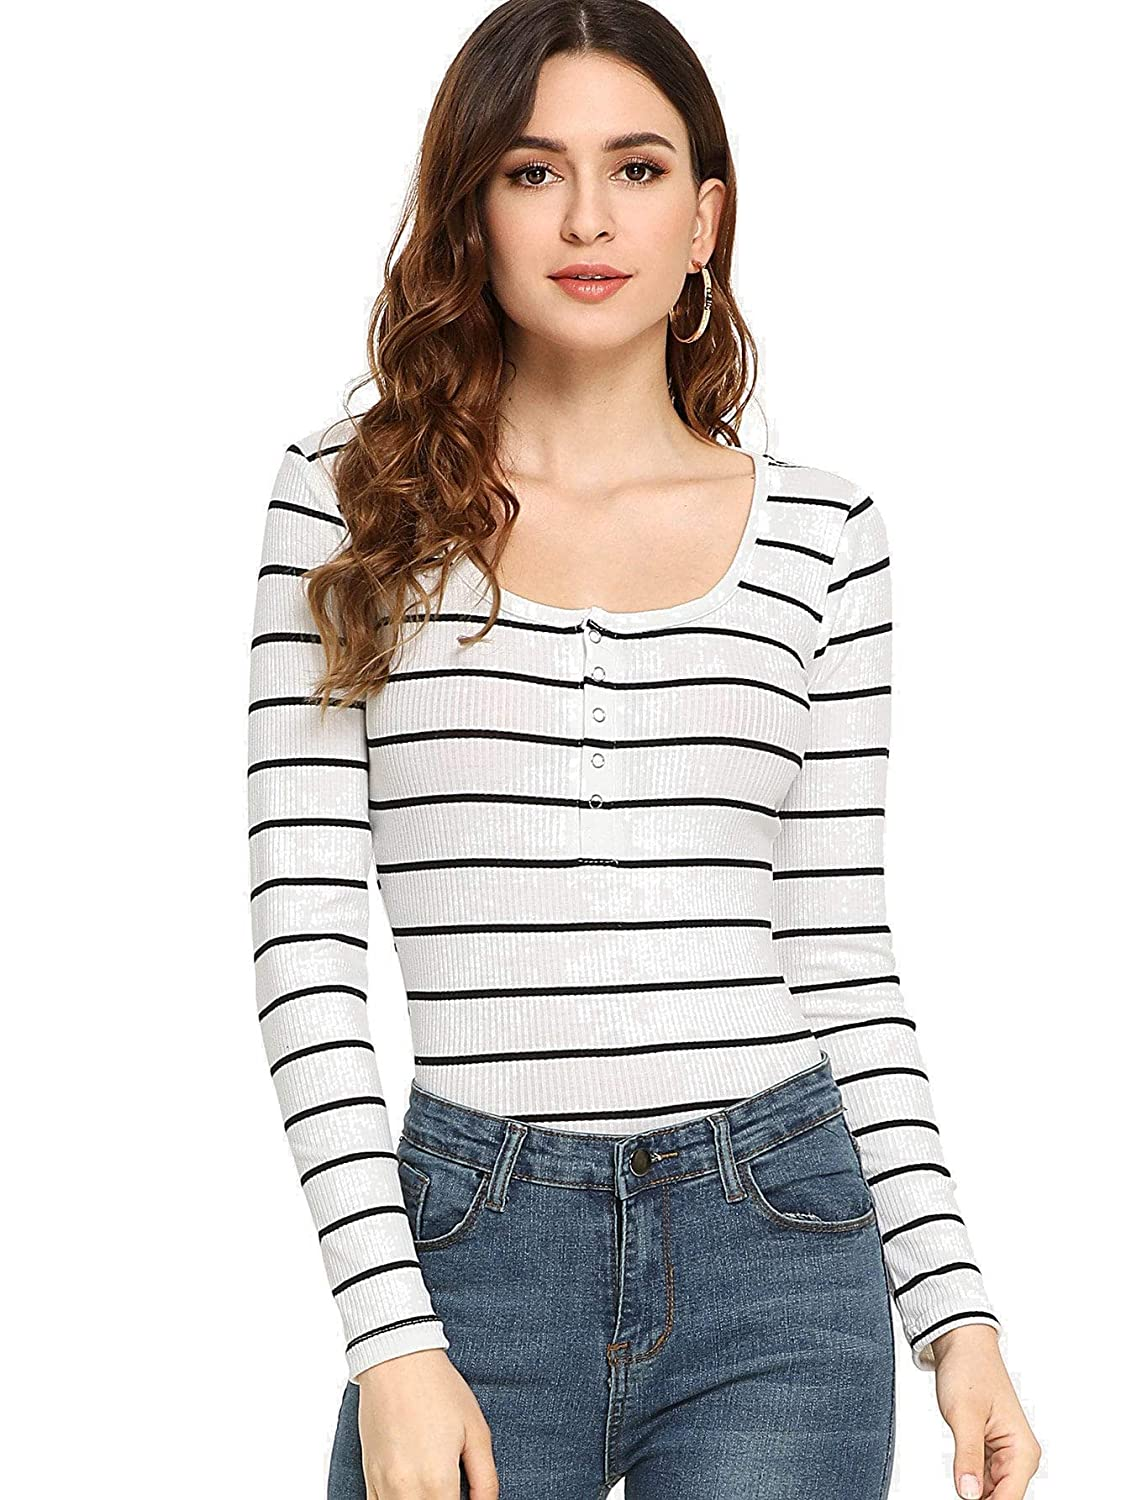 Bmulti3 Milumia Women's Casual Striped Ribbed Tee Knit Crop Top